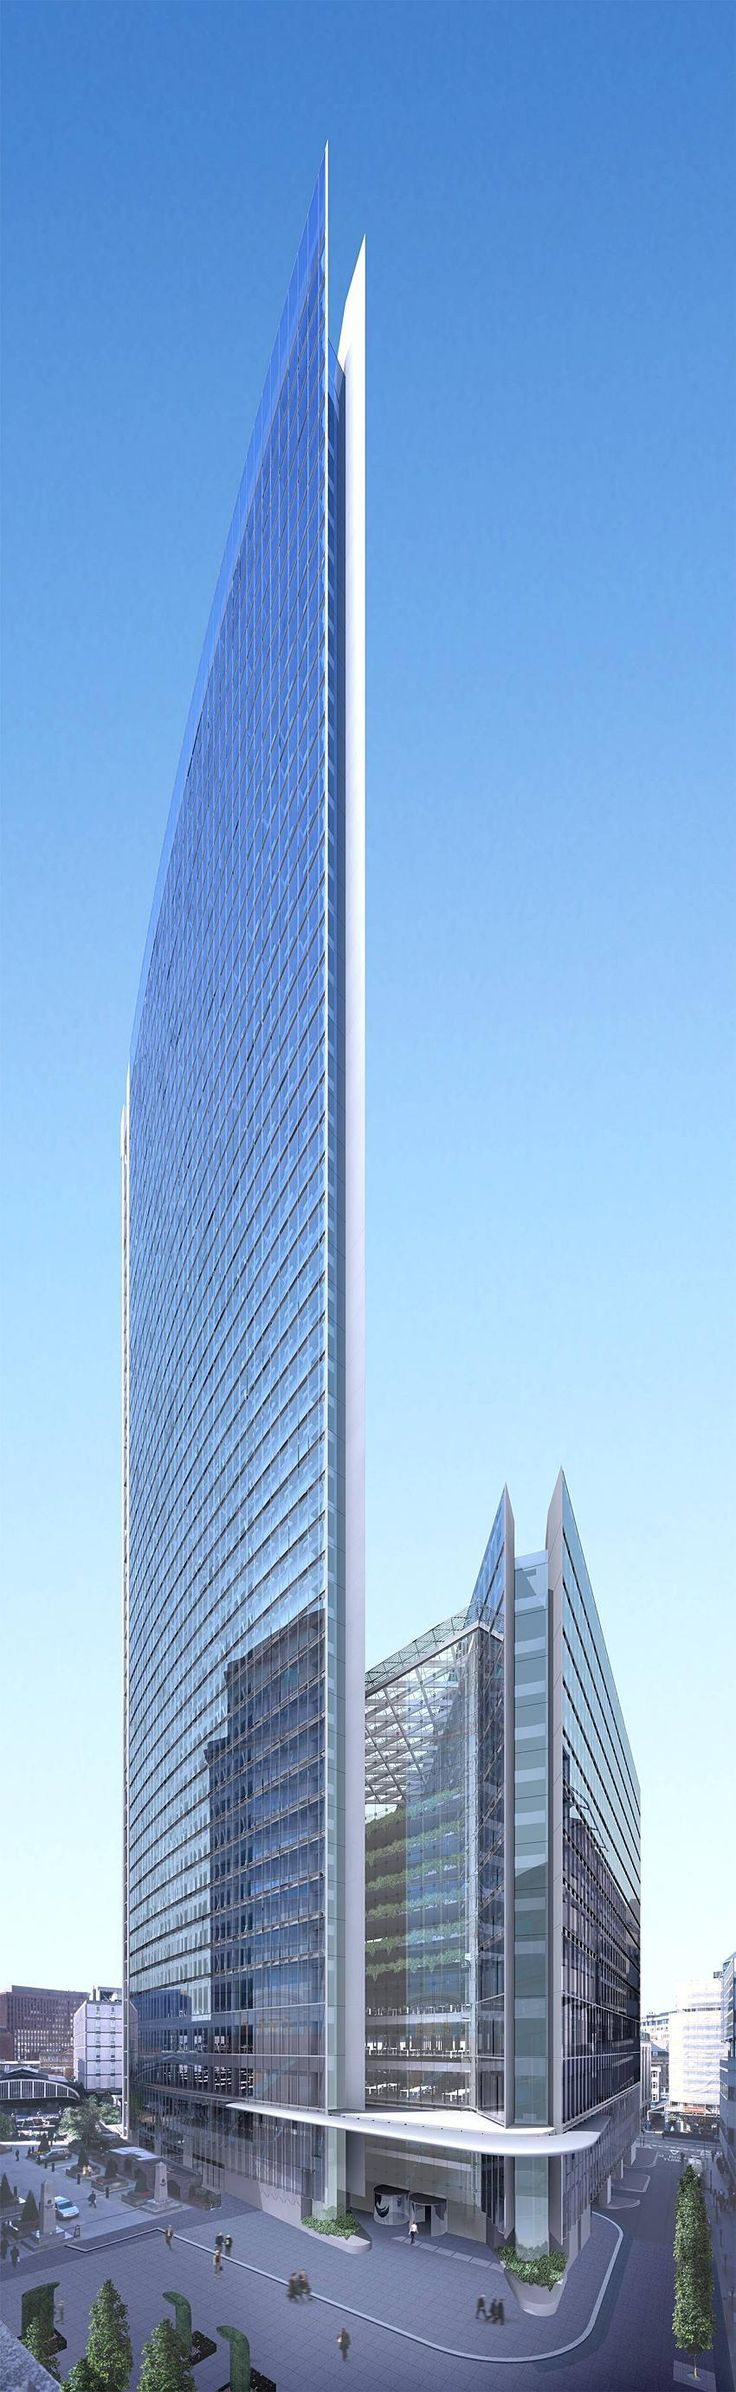 The Minerva Building and new plaza  #RealEstate #ArtfulArchitecture    See more at: http://castlesmart.com/